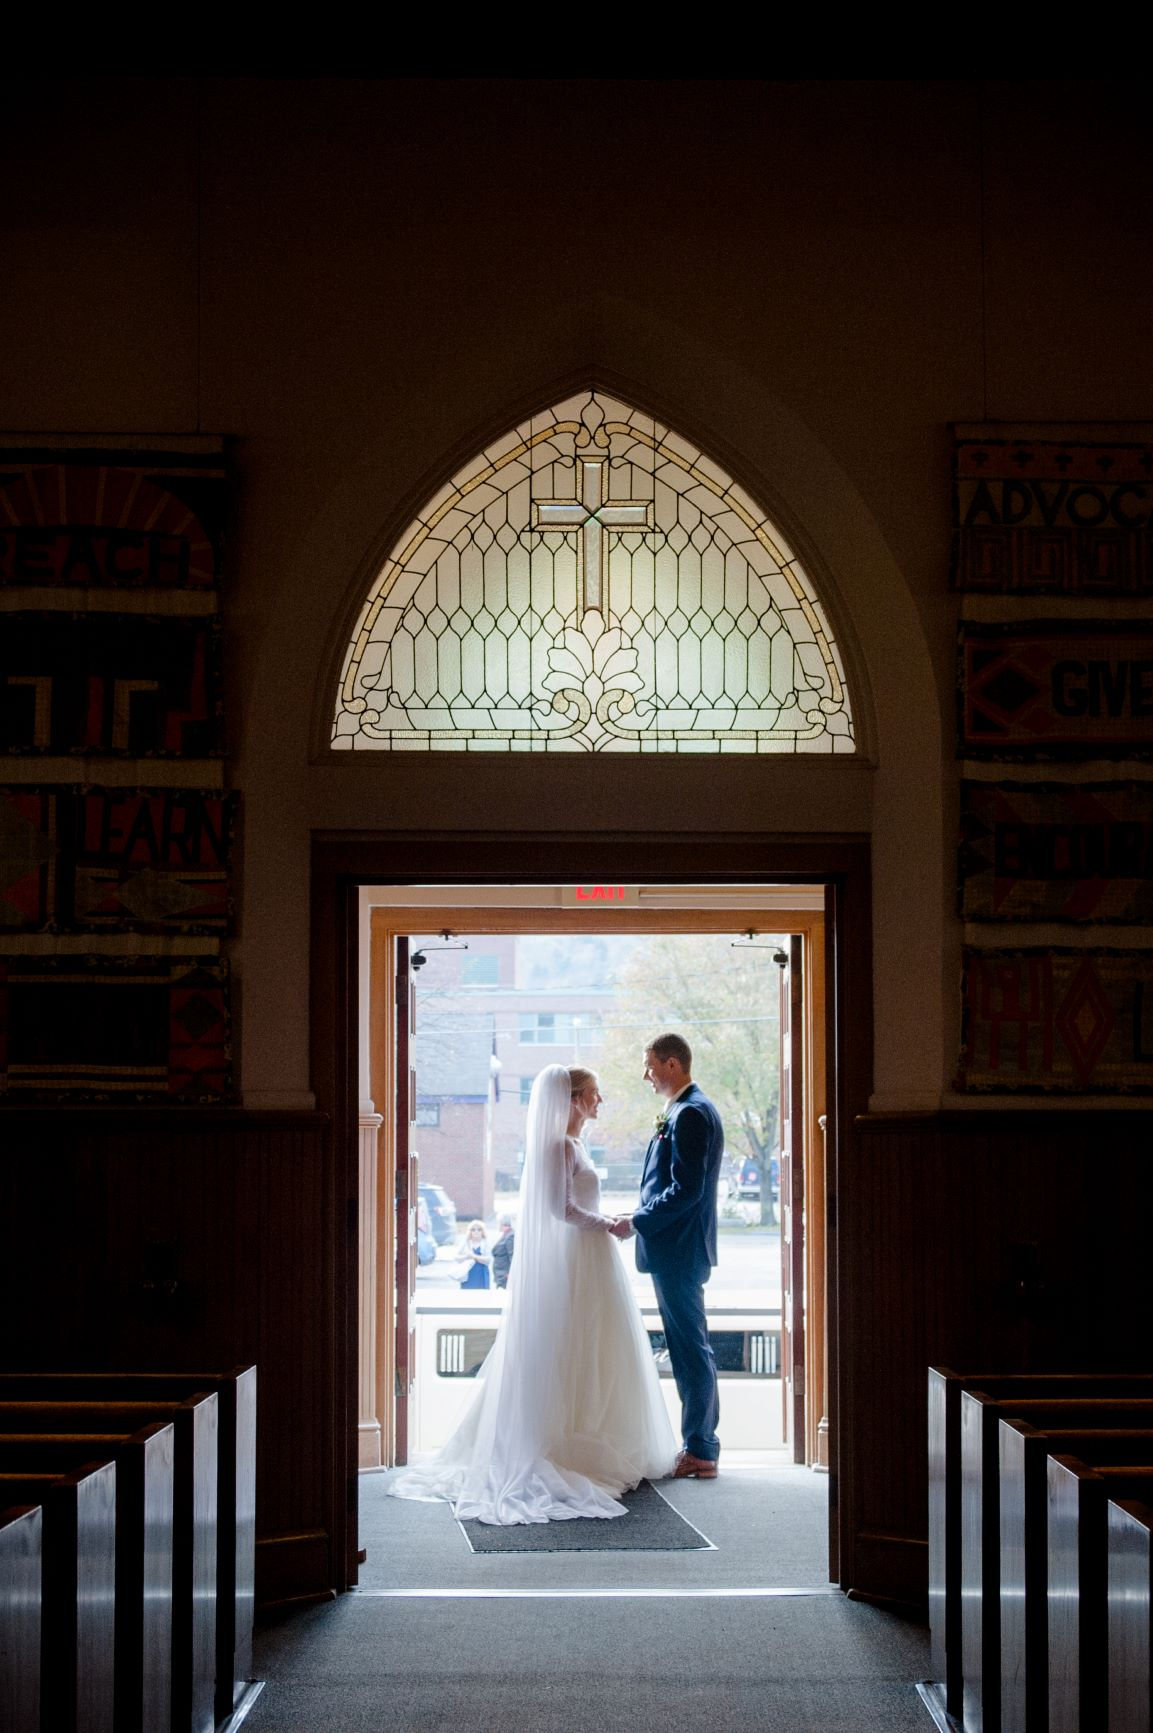 A photo of the wedding of Allie (Robinson) and Allan Runions. Standing facing each other at the church entryway.